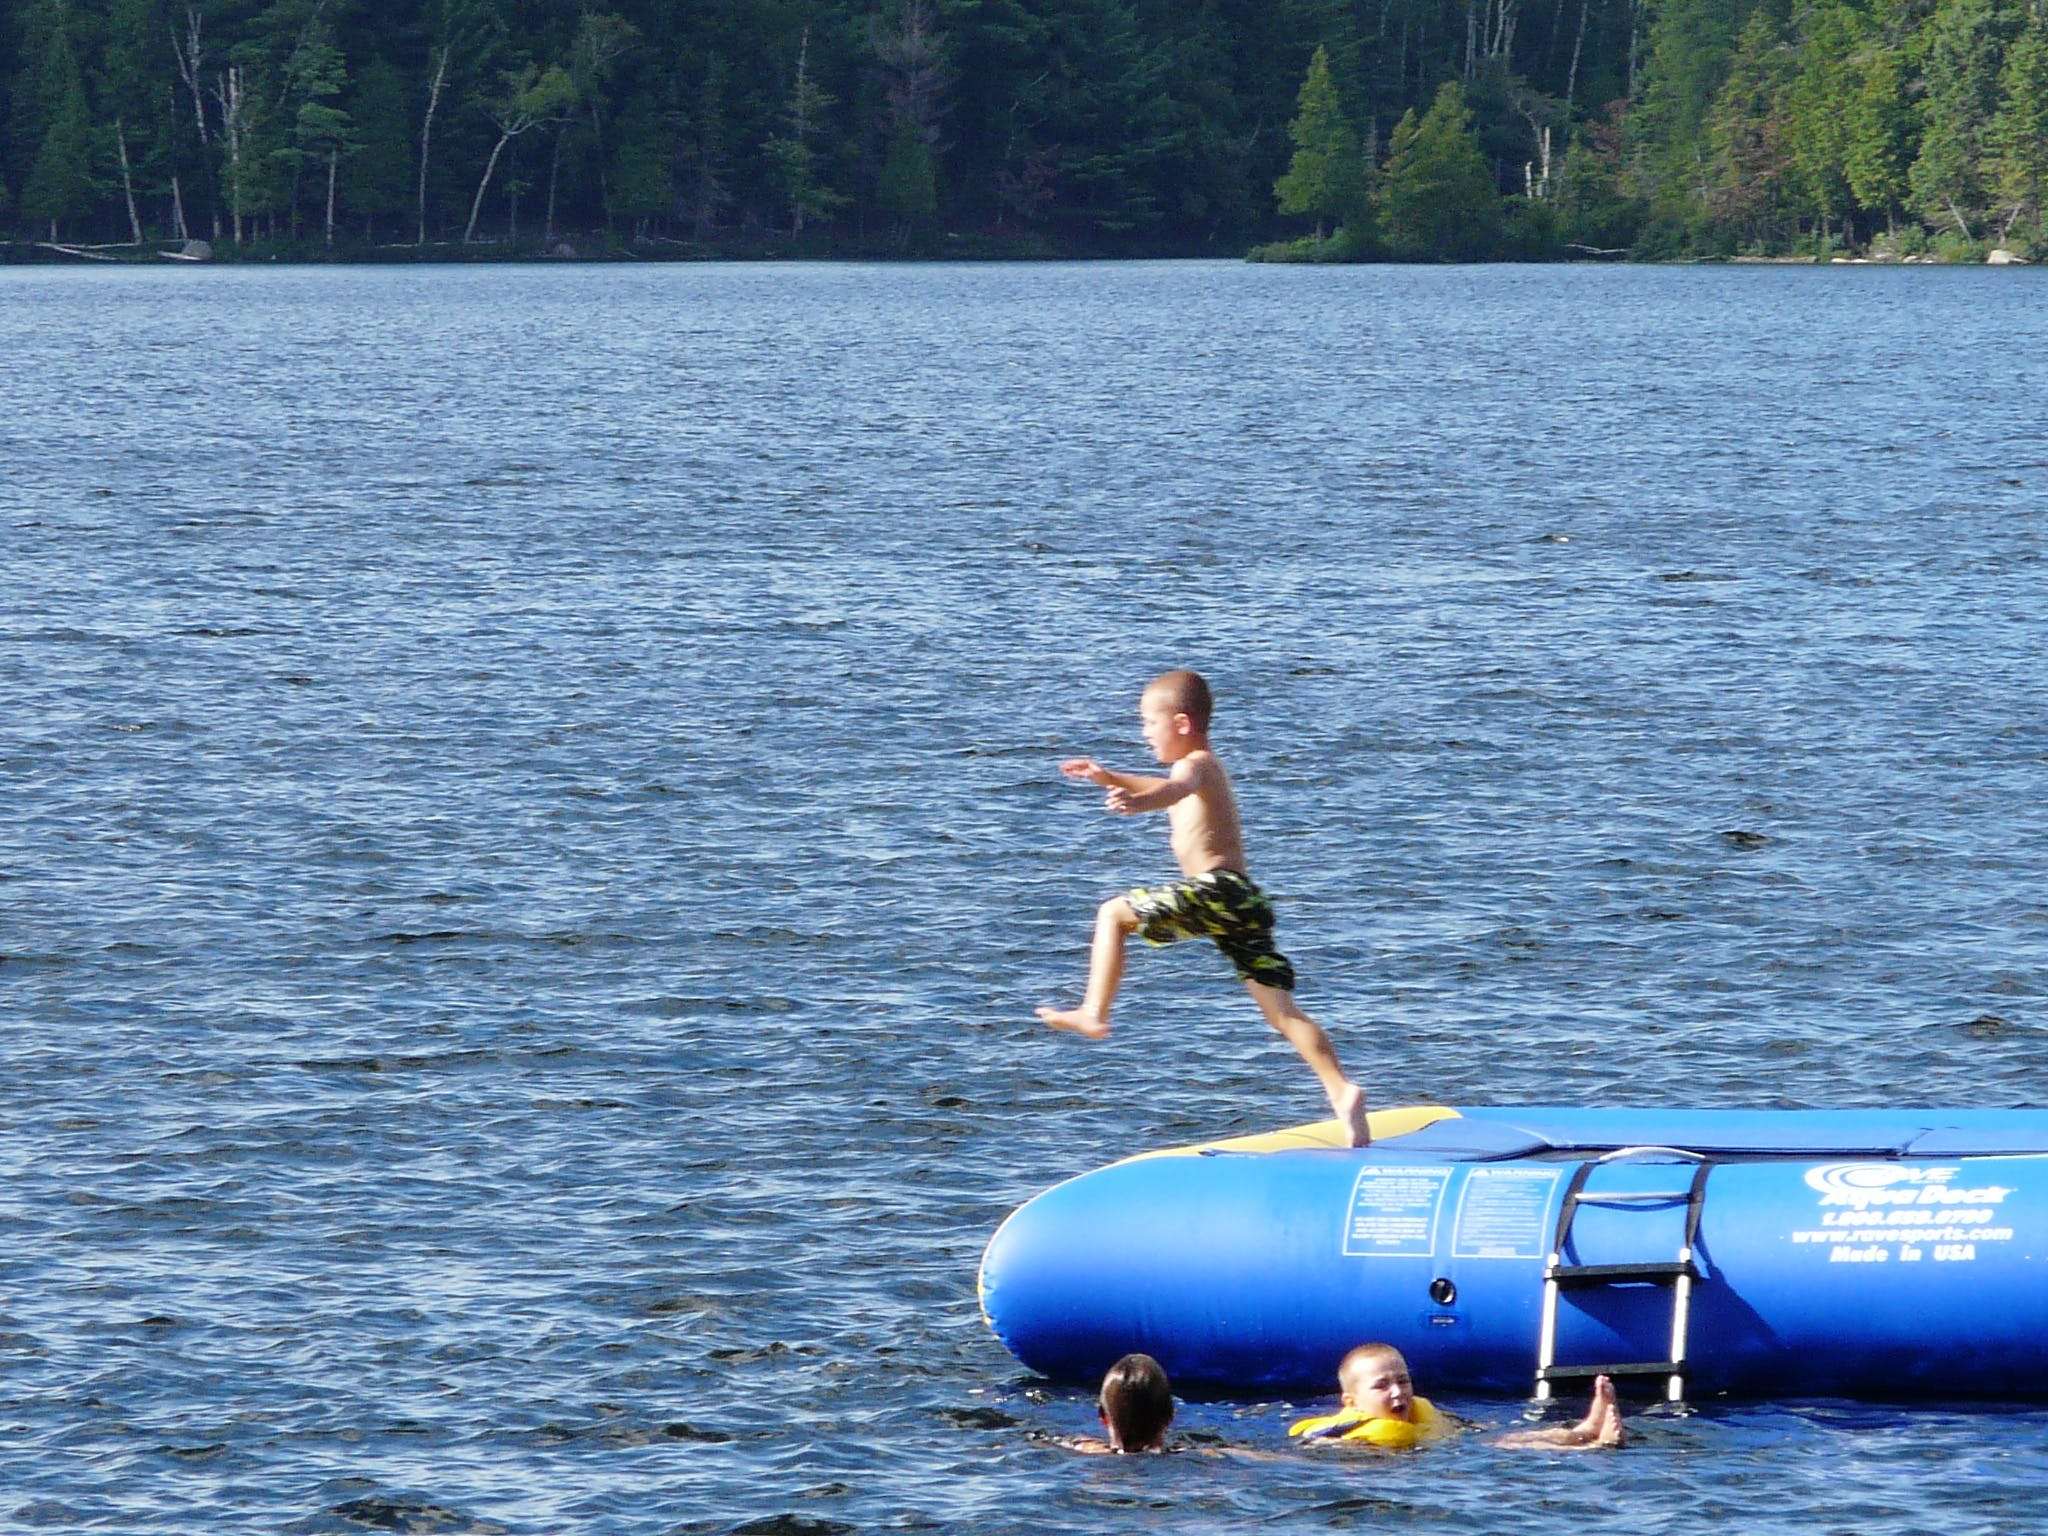 Children love it here at Walker Lake Resort in Muskoka near Huntsville and Algonquin Park